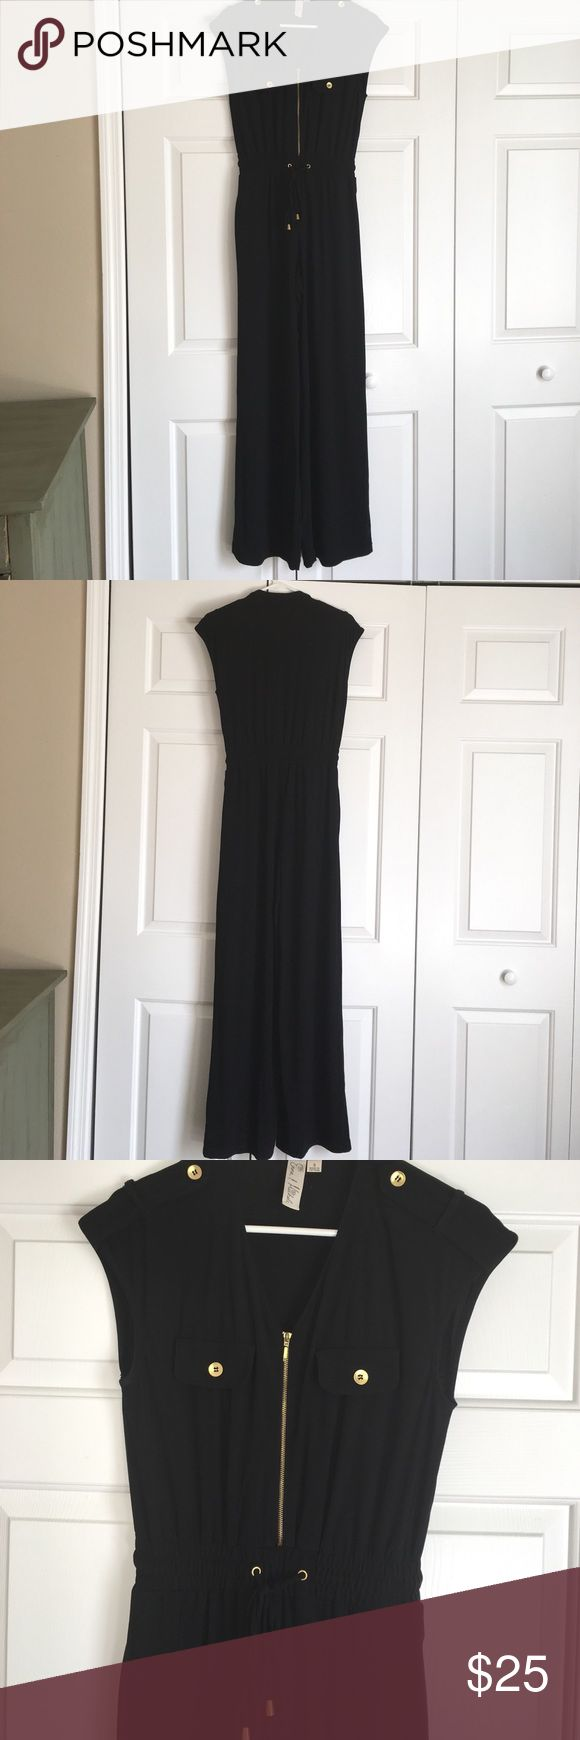 Black jump suit Black long jump suit. With gold zipper and buttons. emma & michele Other